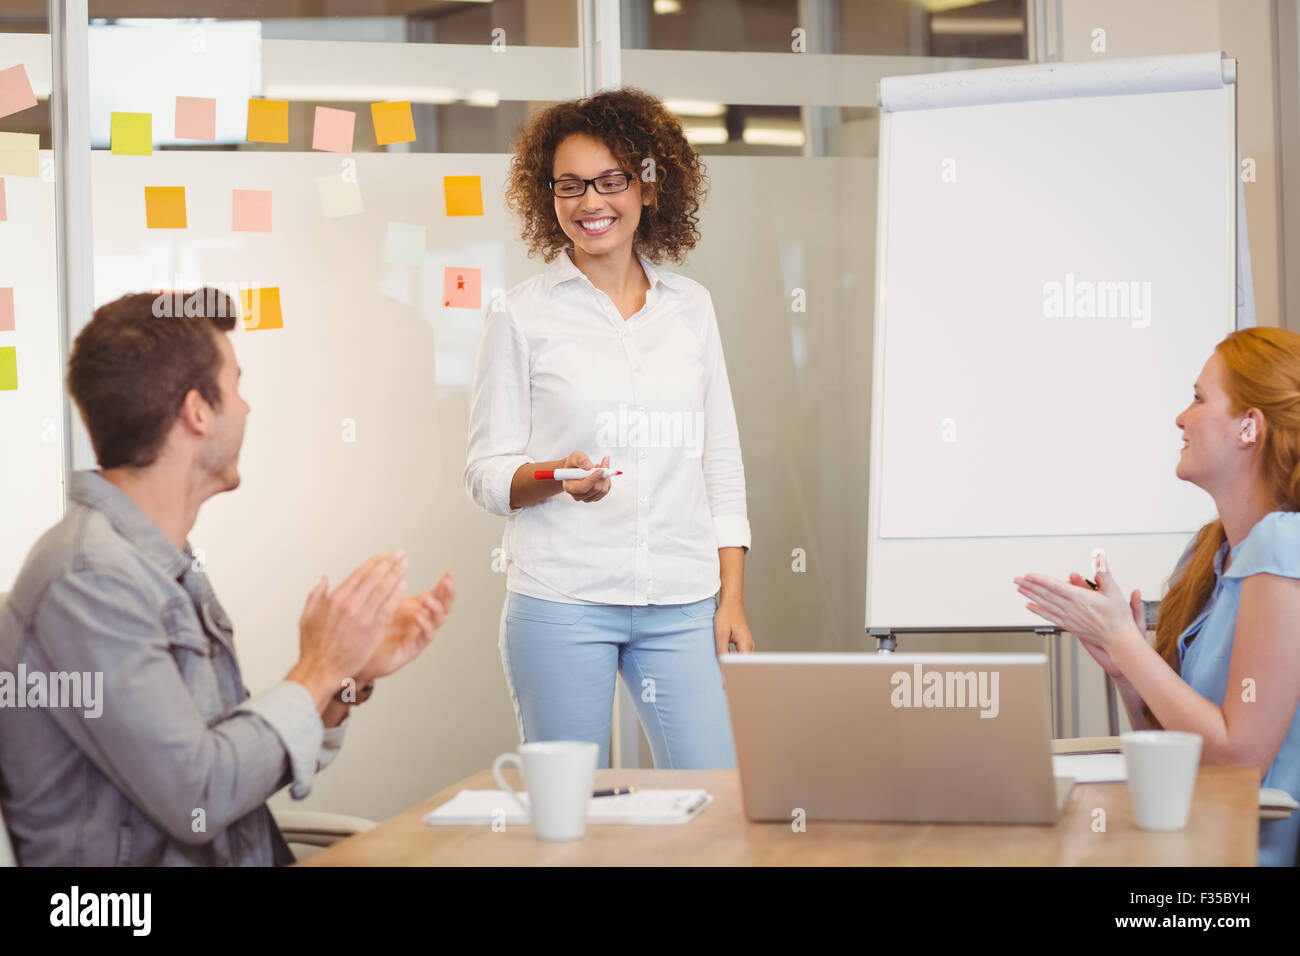 Colleagues appreciating businesswoman in meeting - Stock Image